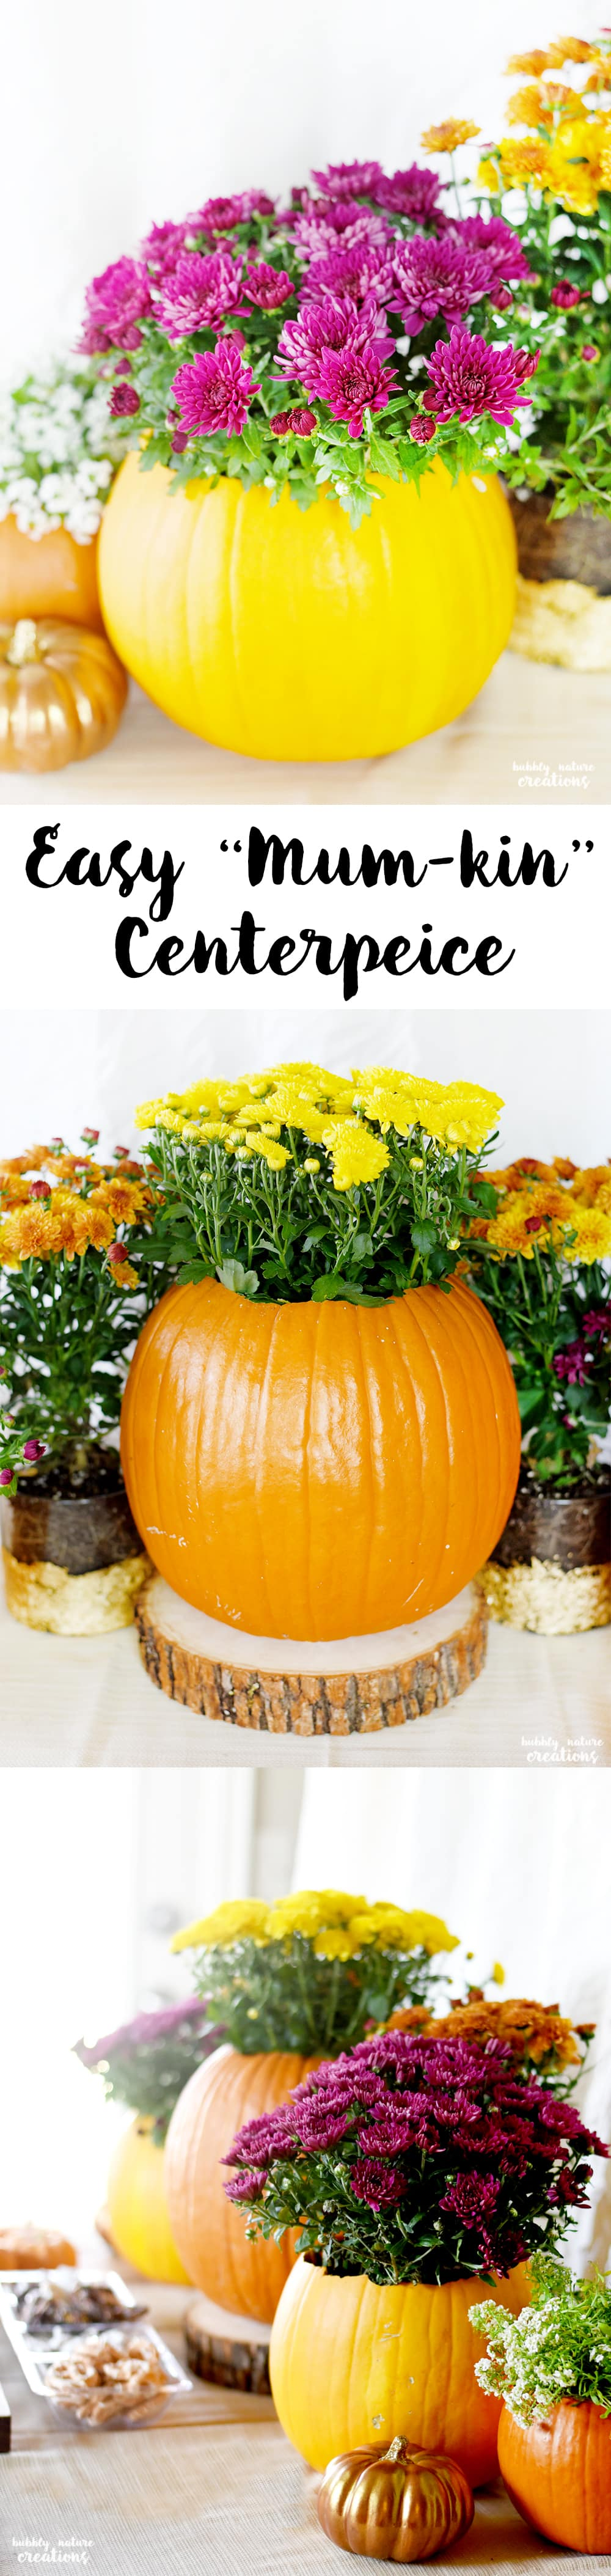 Easy Mumkin Centerpeice! Perfect for Thanksgiving Tablescape or any Fall decor!!!